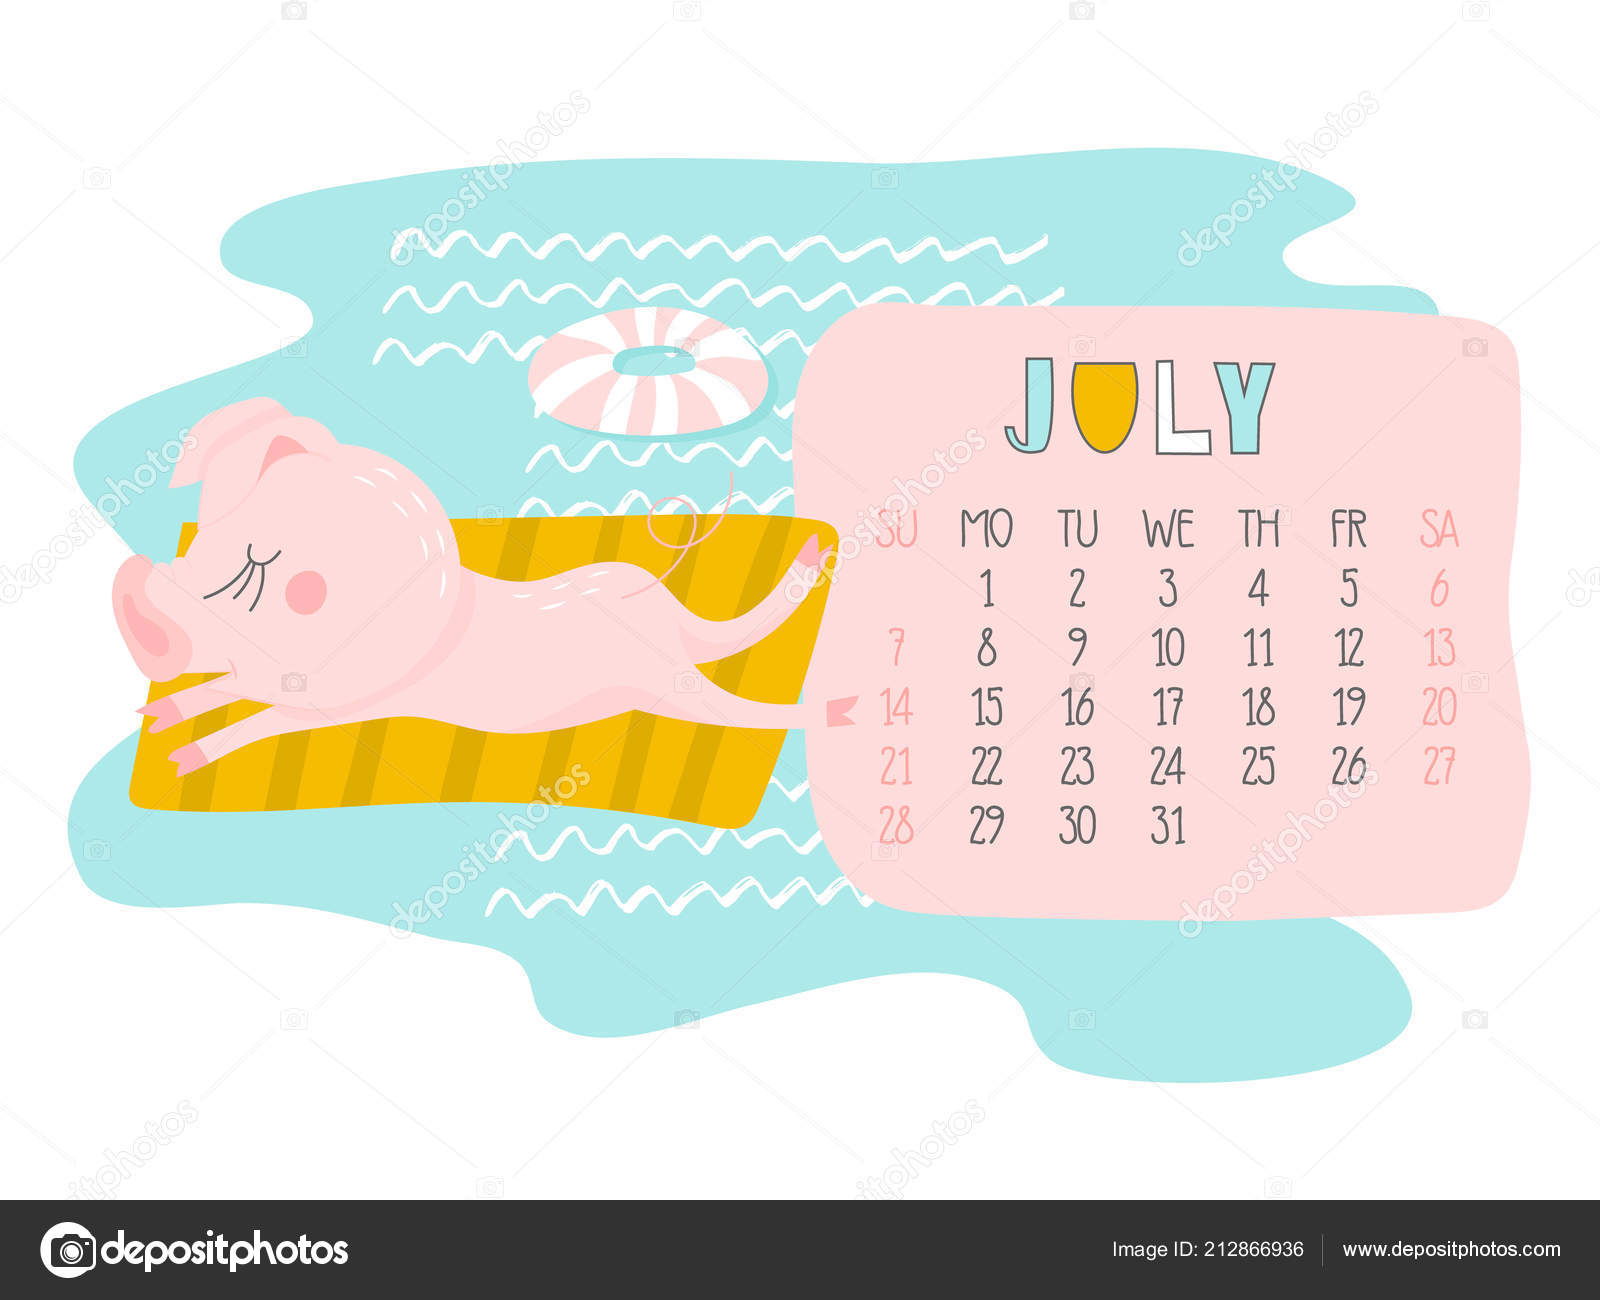 Calendario Julio 2019 Vector.Creative Calendar July 2019 Cute Pig Concept Vector Vertical